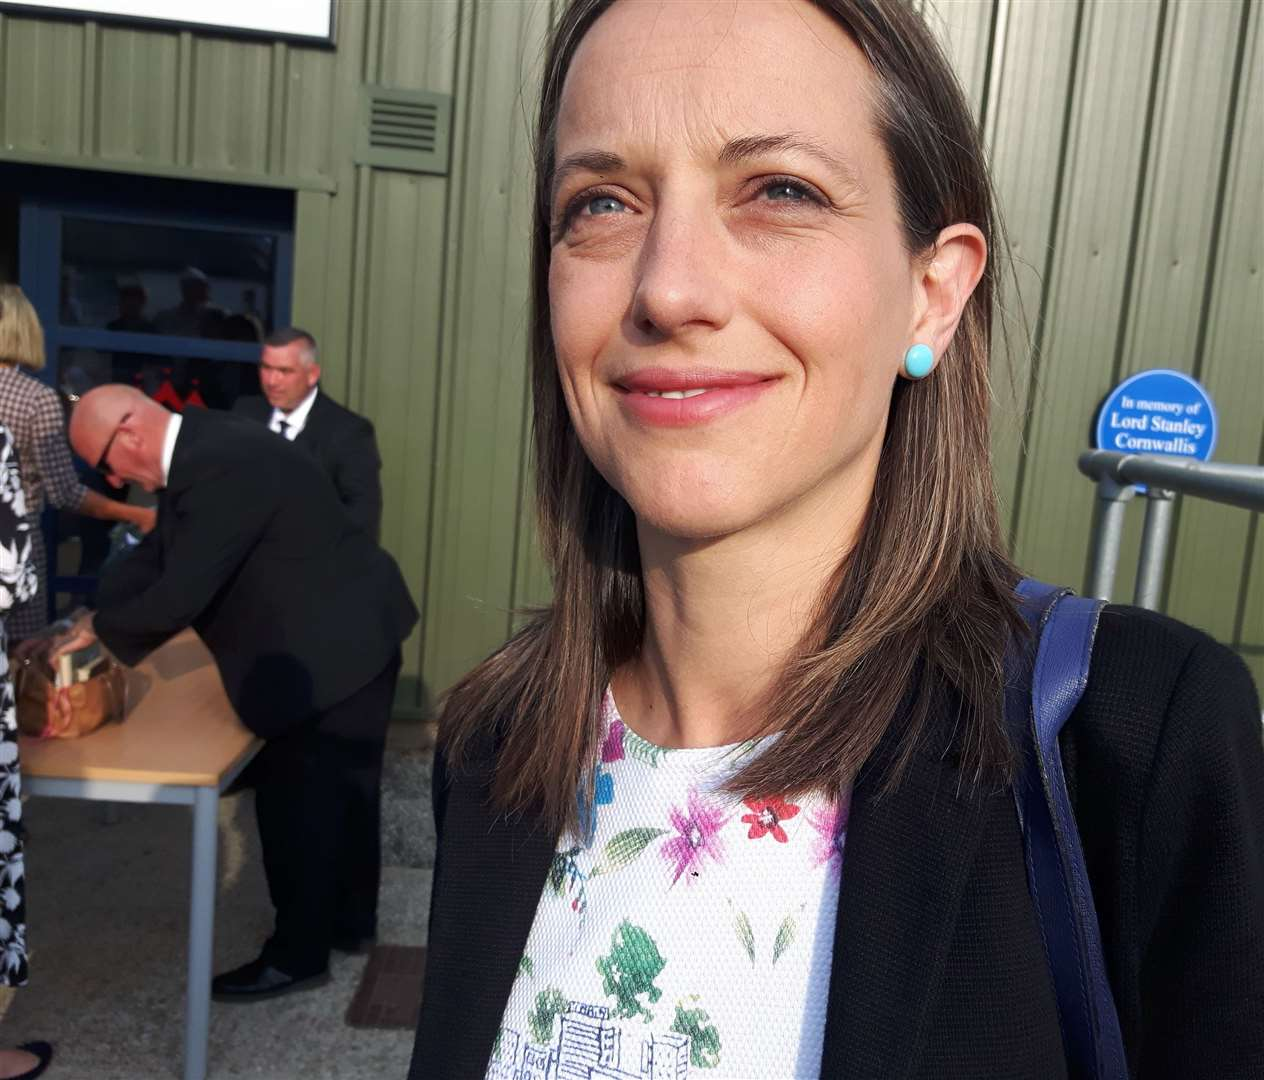 Helen Whately arriving at the hustings